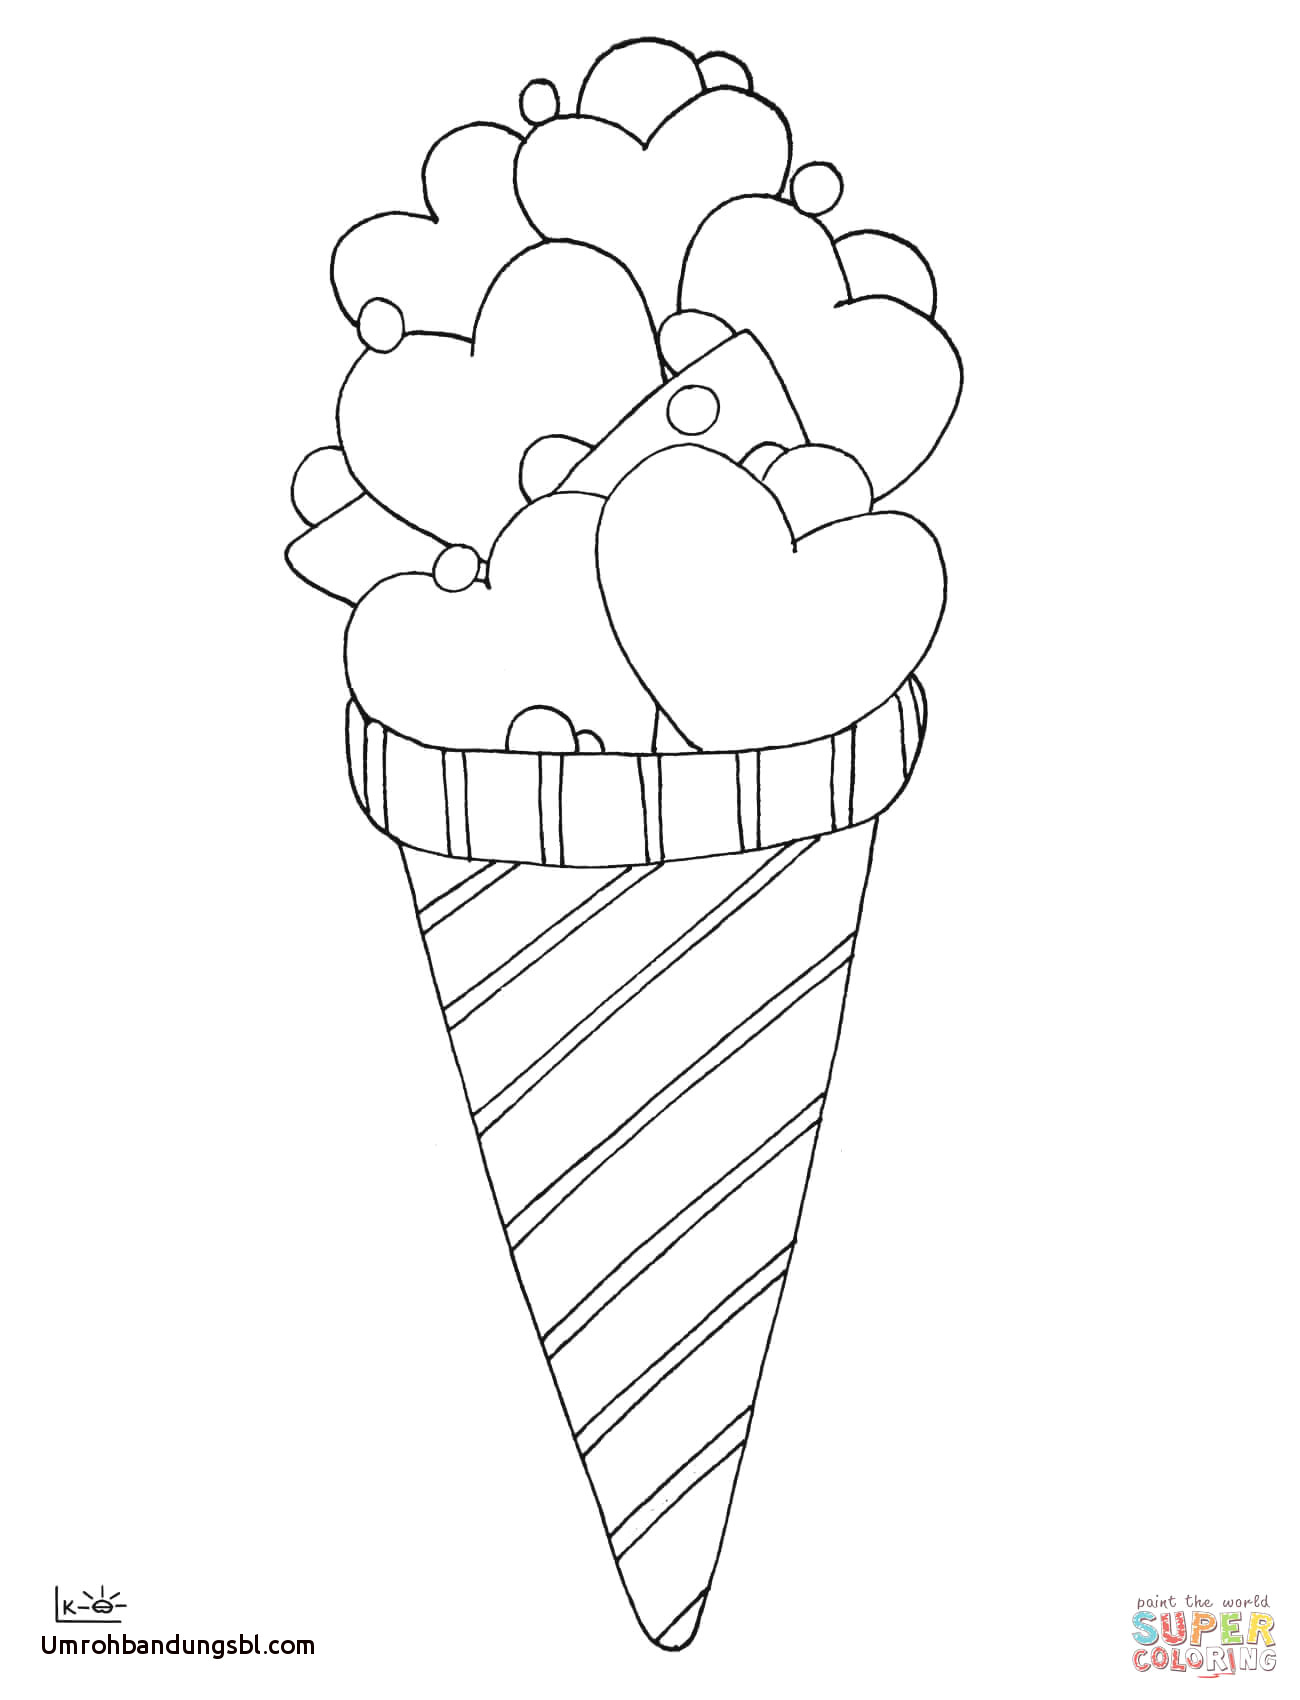 Icecream Cone Coloring Pages  to Print 19g - Save it to your computer